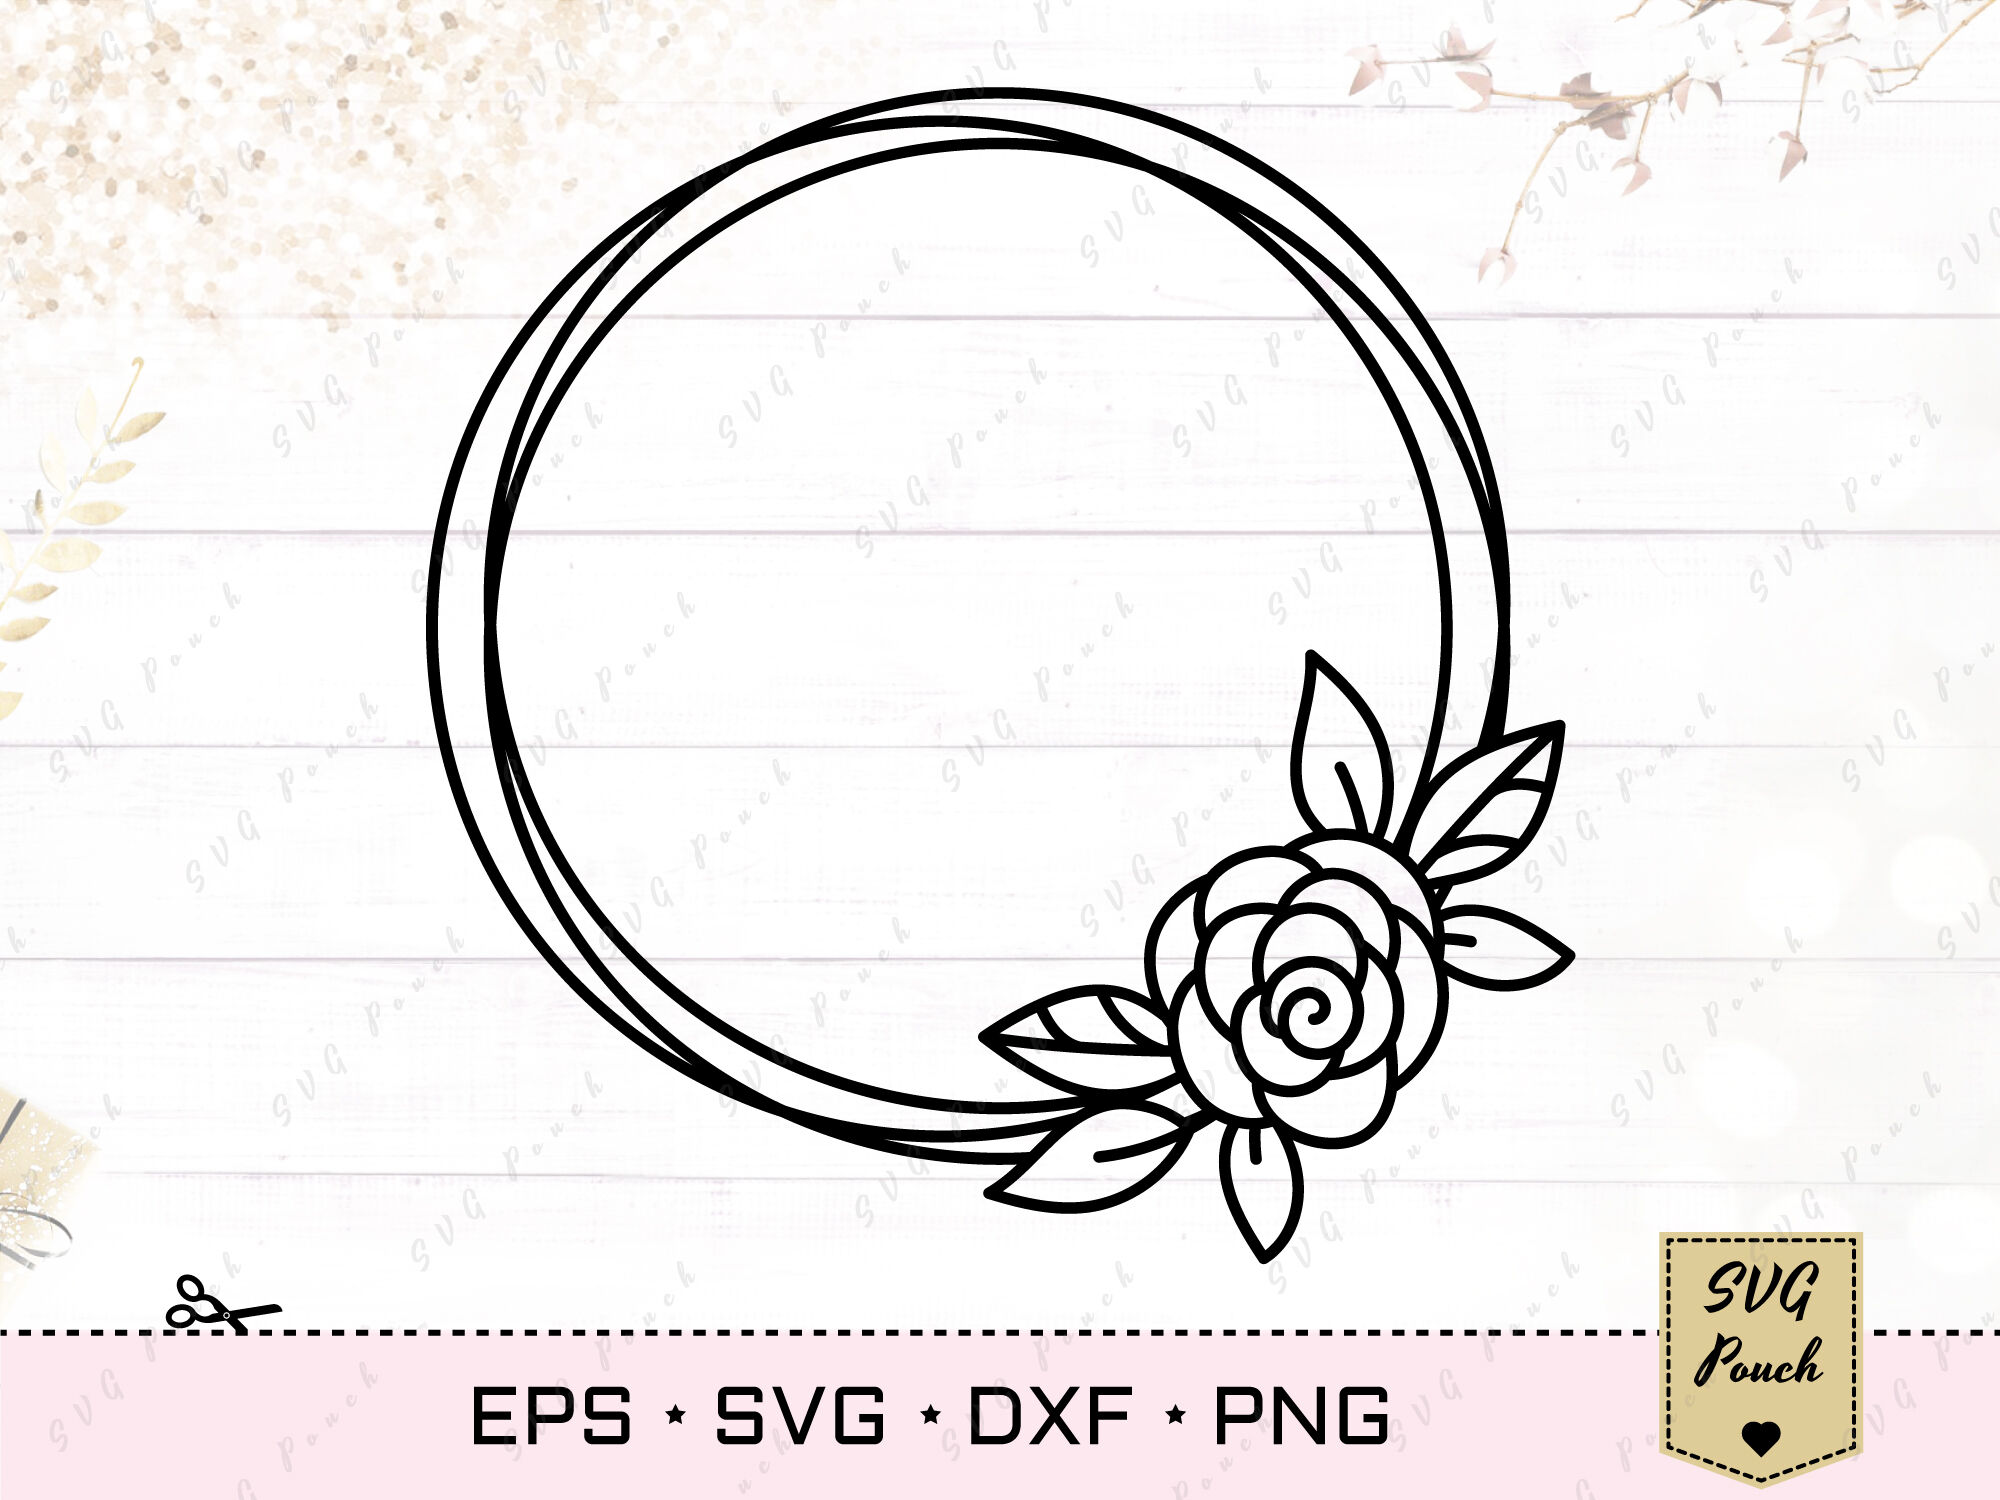 Floral Wreath Svg By Svgpouch Thehungryjpeg Com